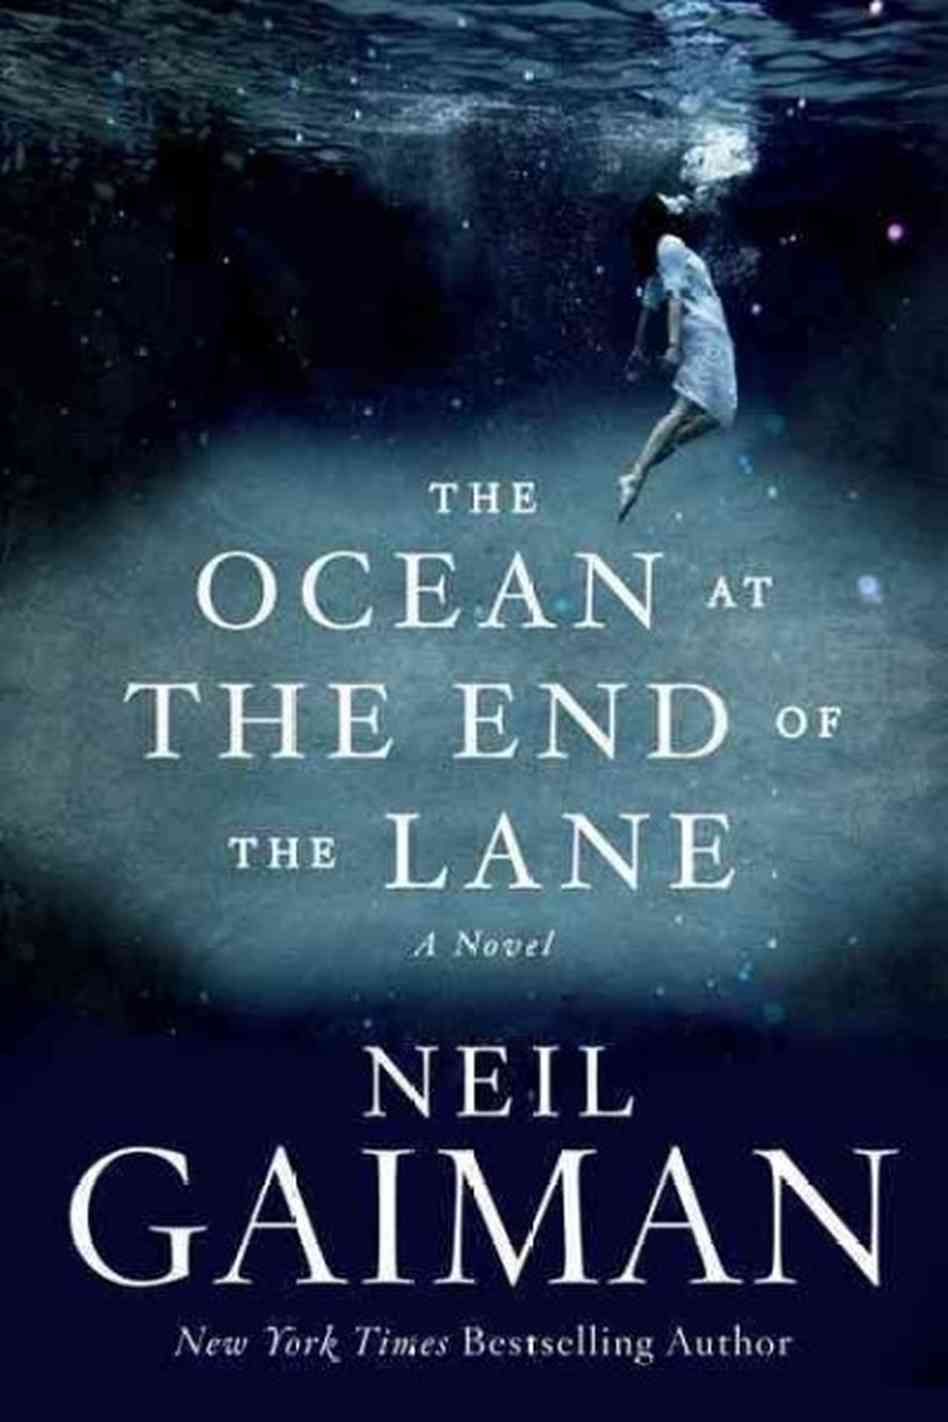 Book Review: The Ocean at the End of the Lane by Neil Gaiman